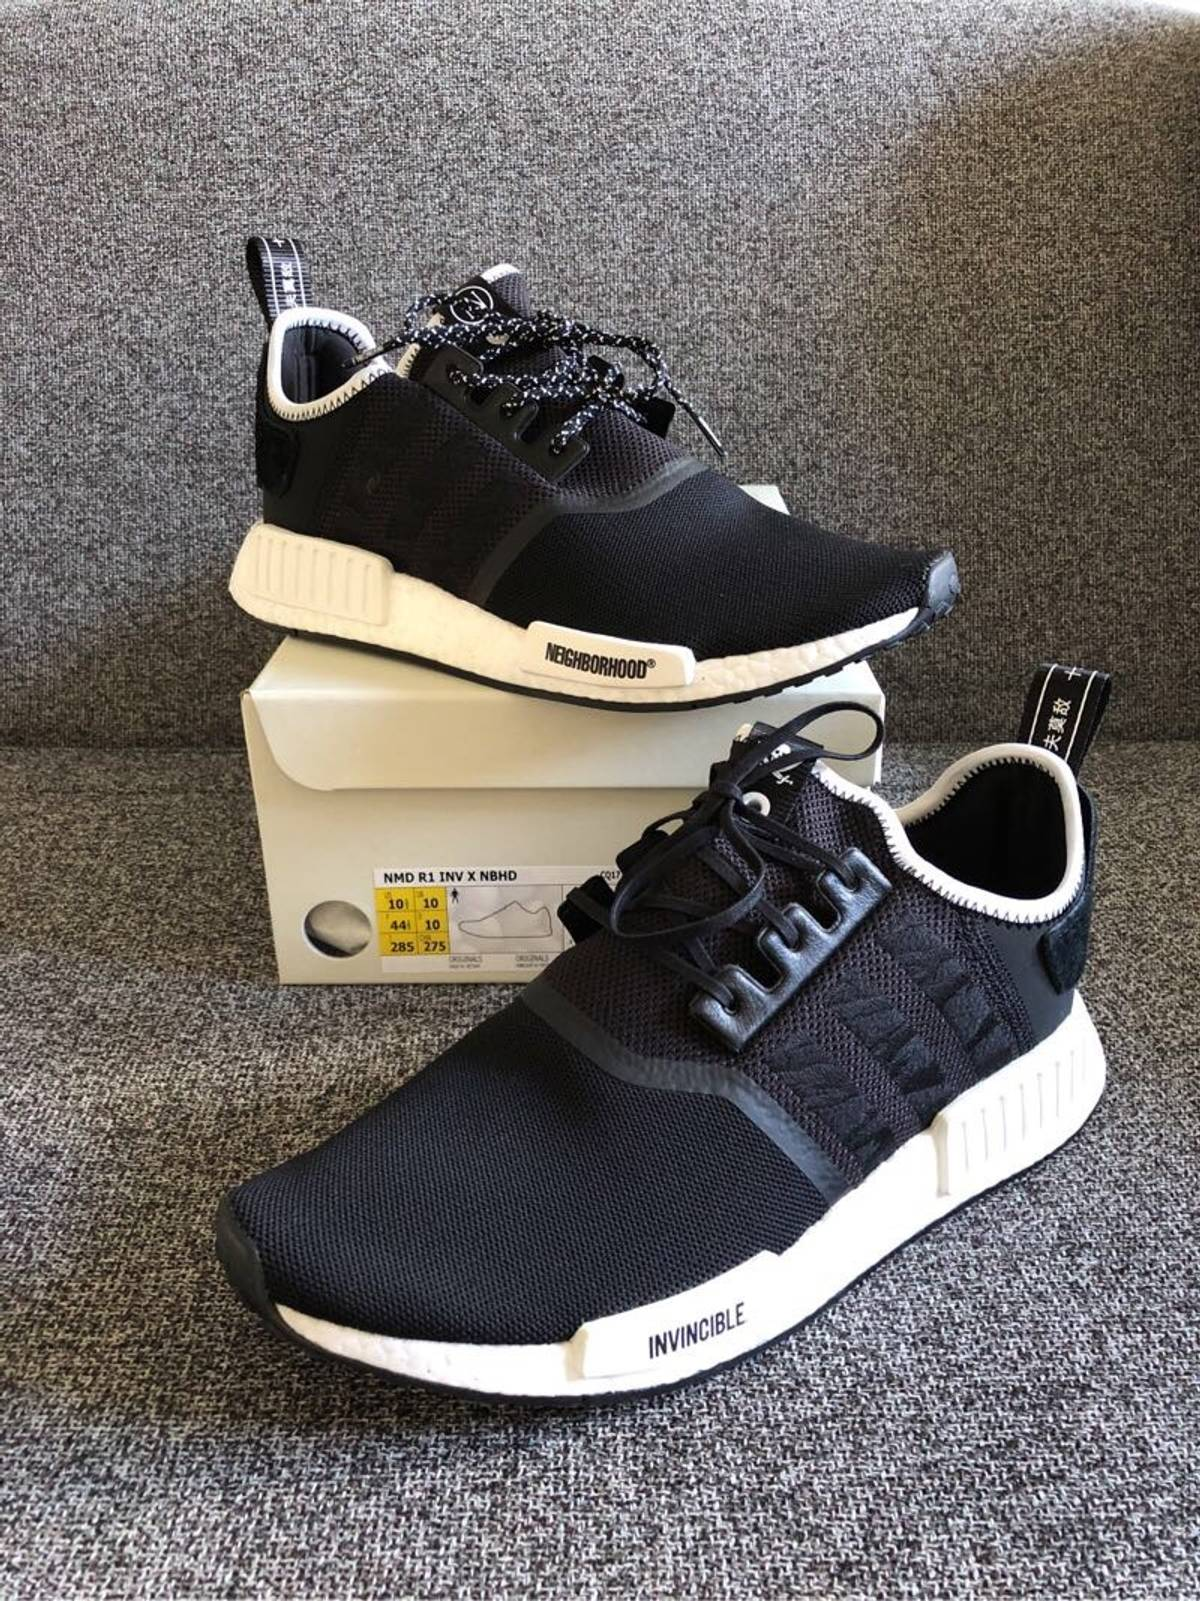 best loved 818f2 76227 Adidas New Adidas Nmd X Invincible Neighborhood Limited Size 10.5 $450